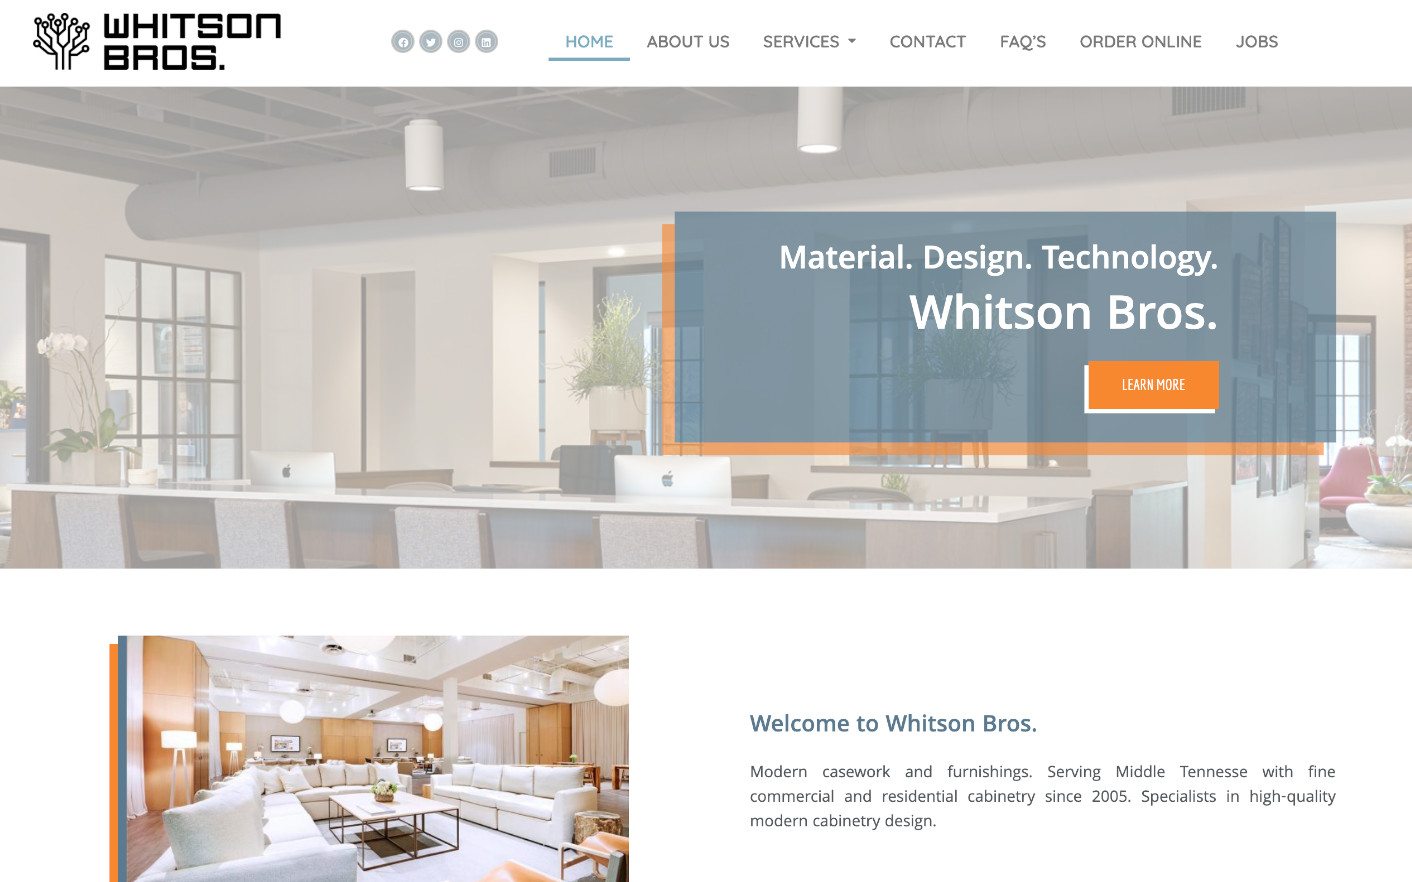 Homepage of Whitson Bros website